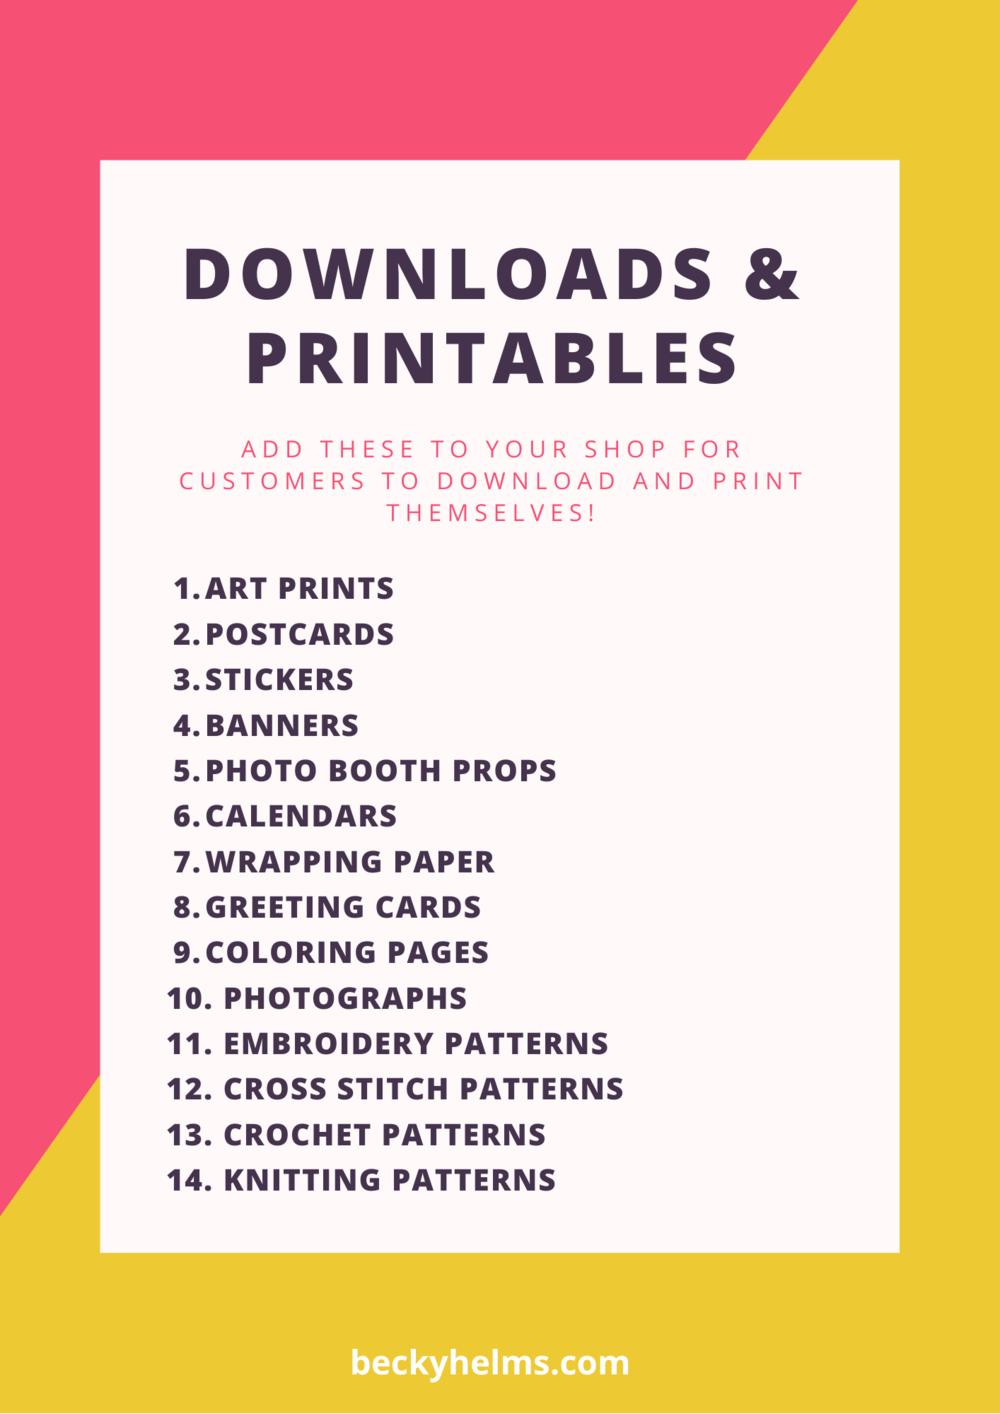 downloads and printables to sell in your e-commerce shop